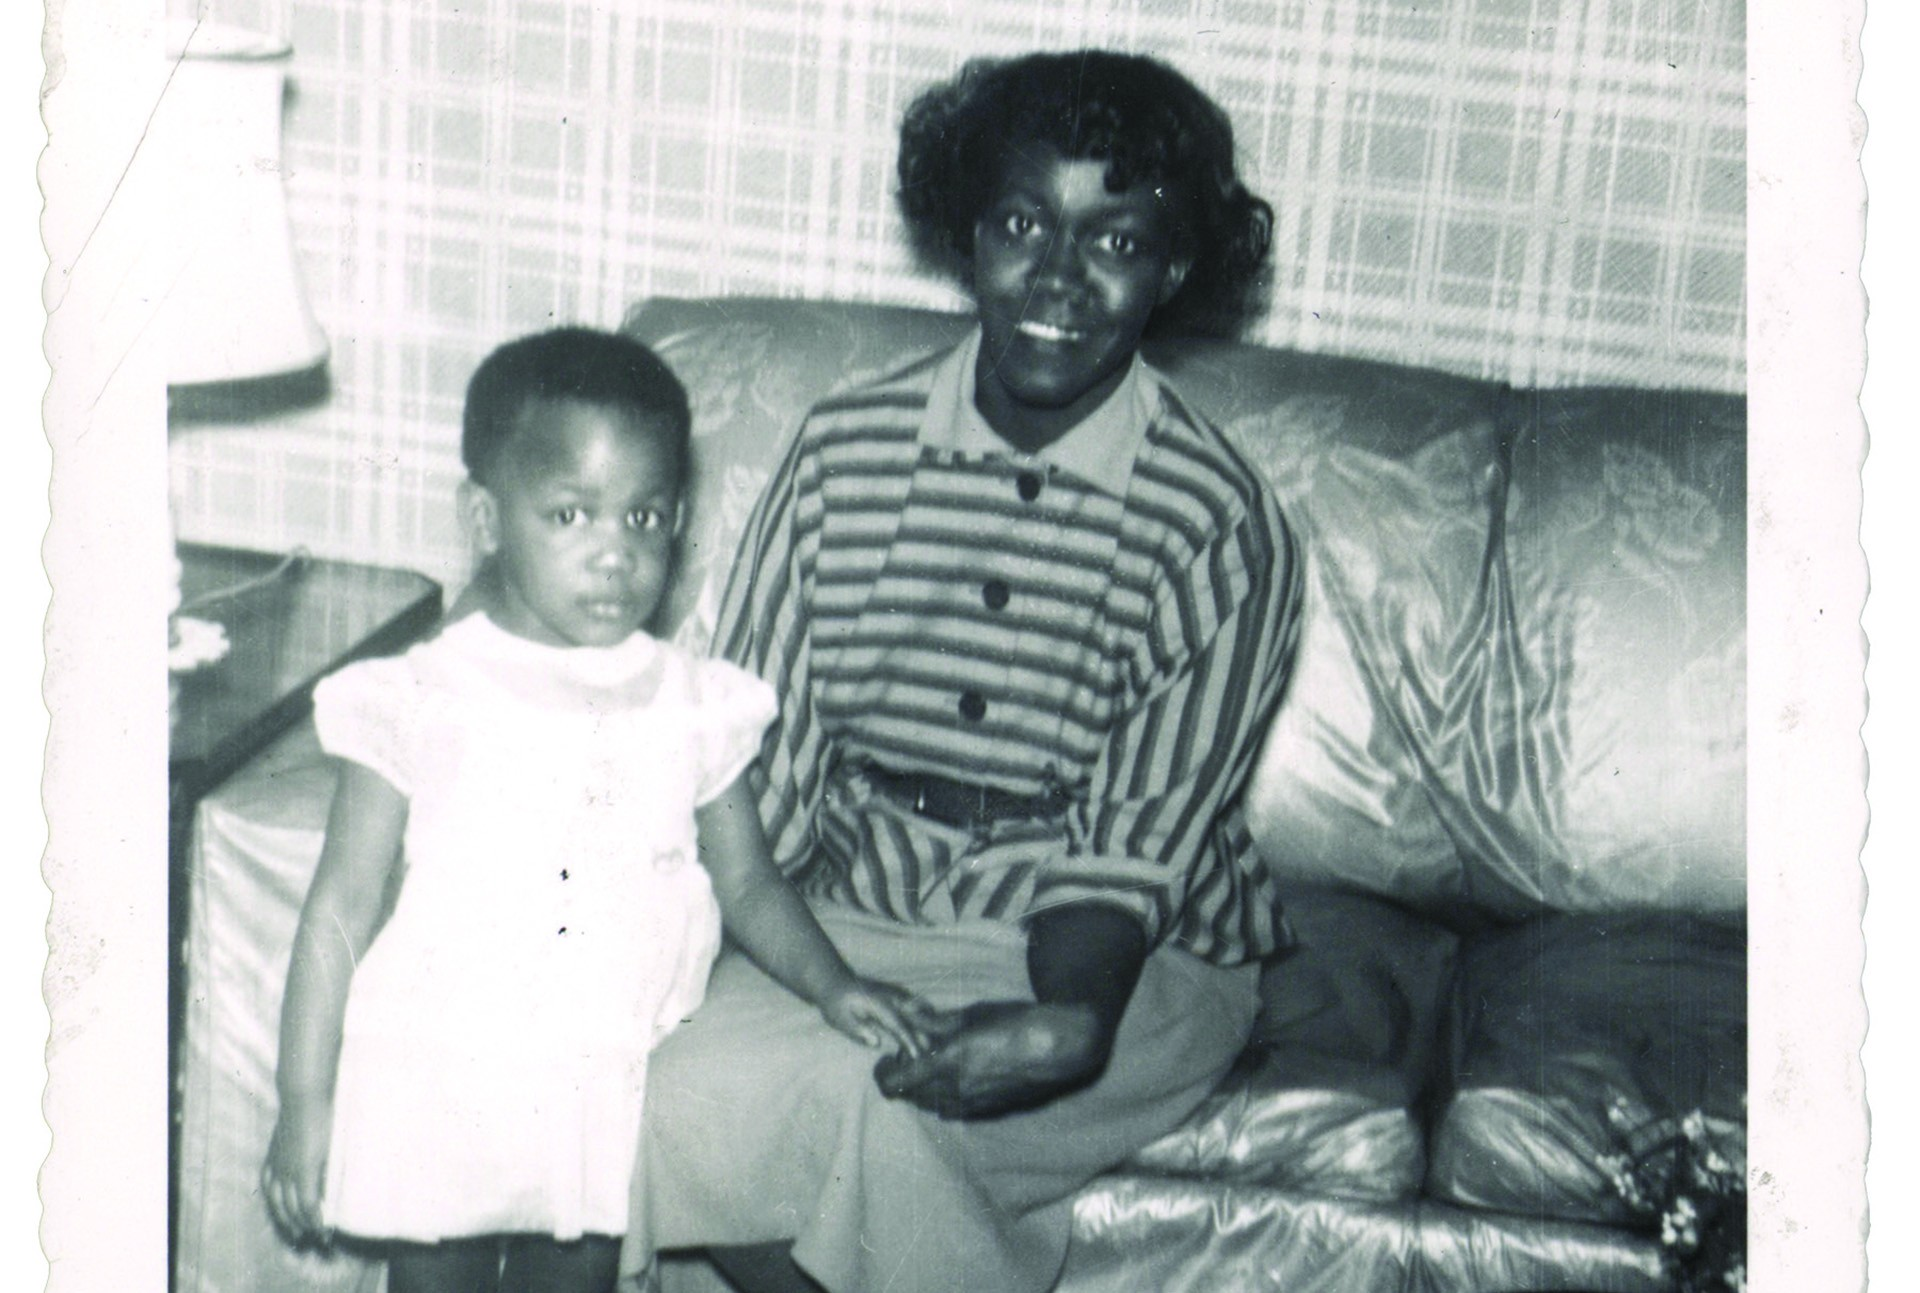 Black and white photograph of the poet Gwendolyn Brooks sitting on the couch with her daughter, Nora Blakely.